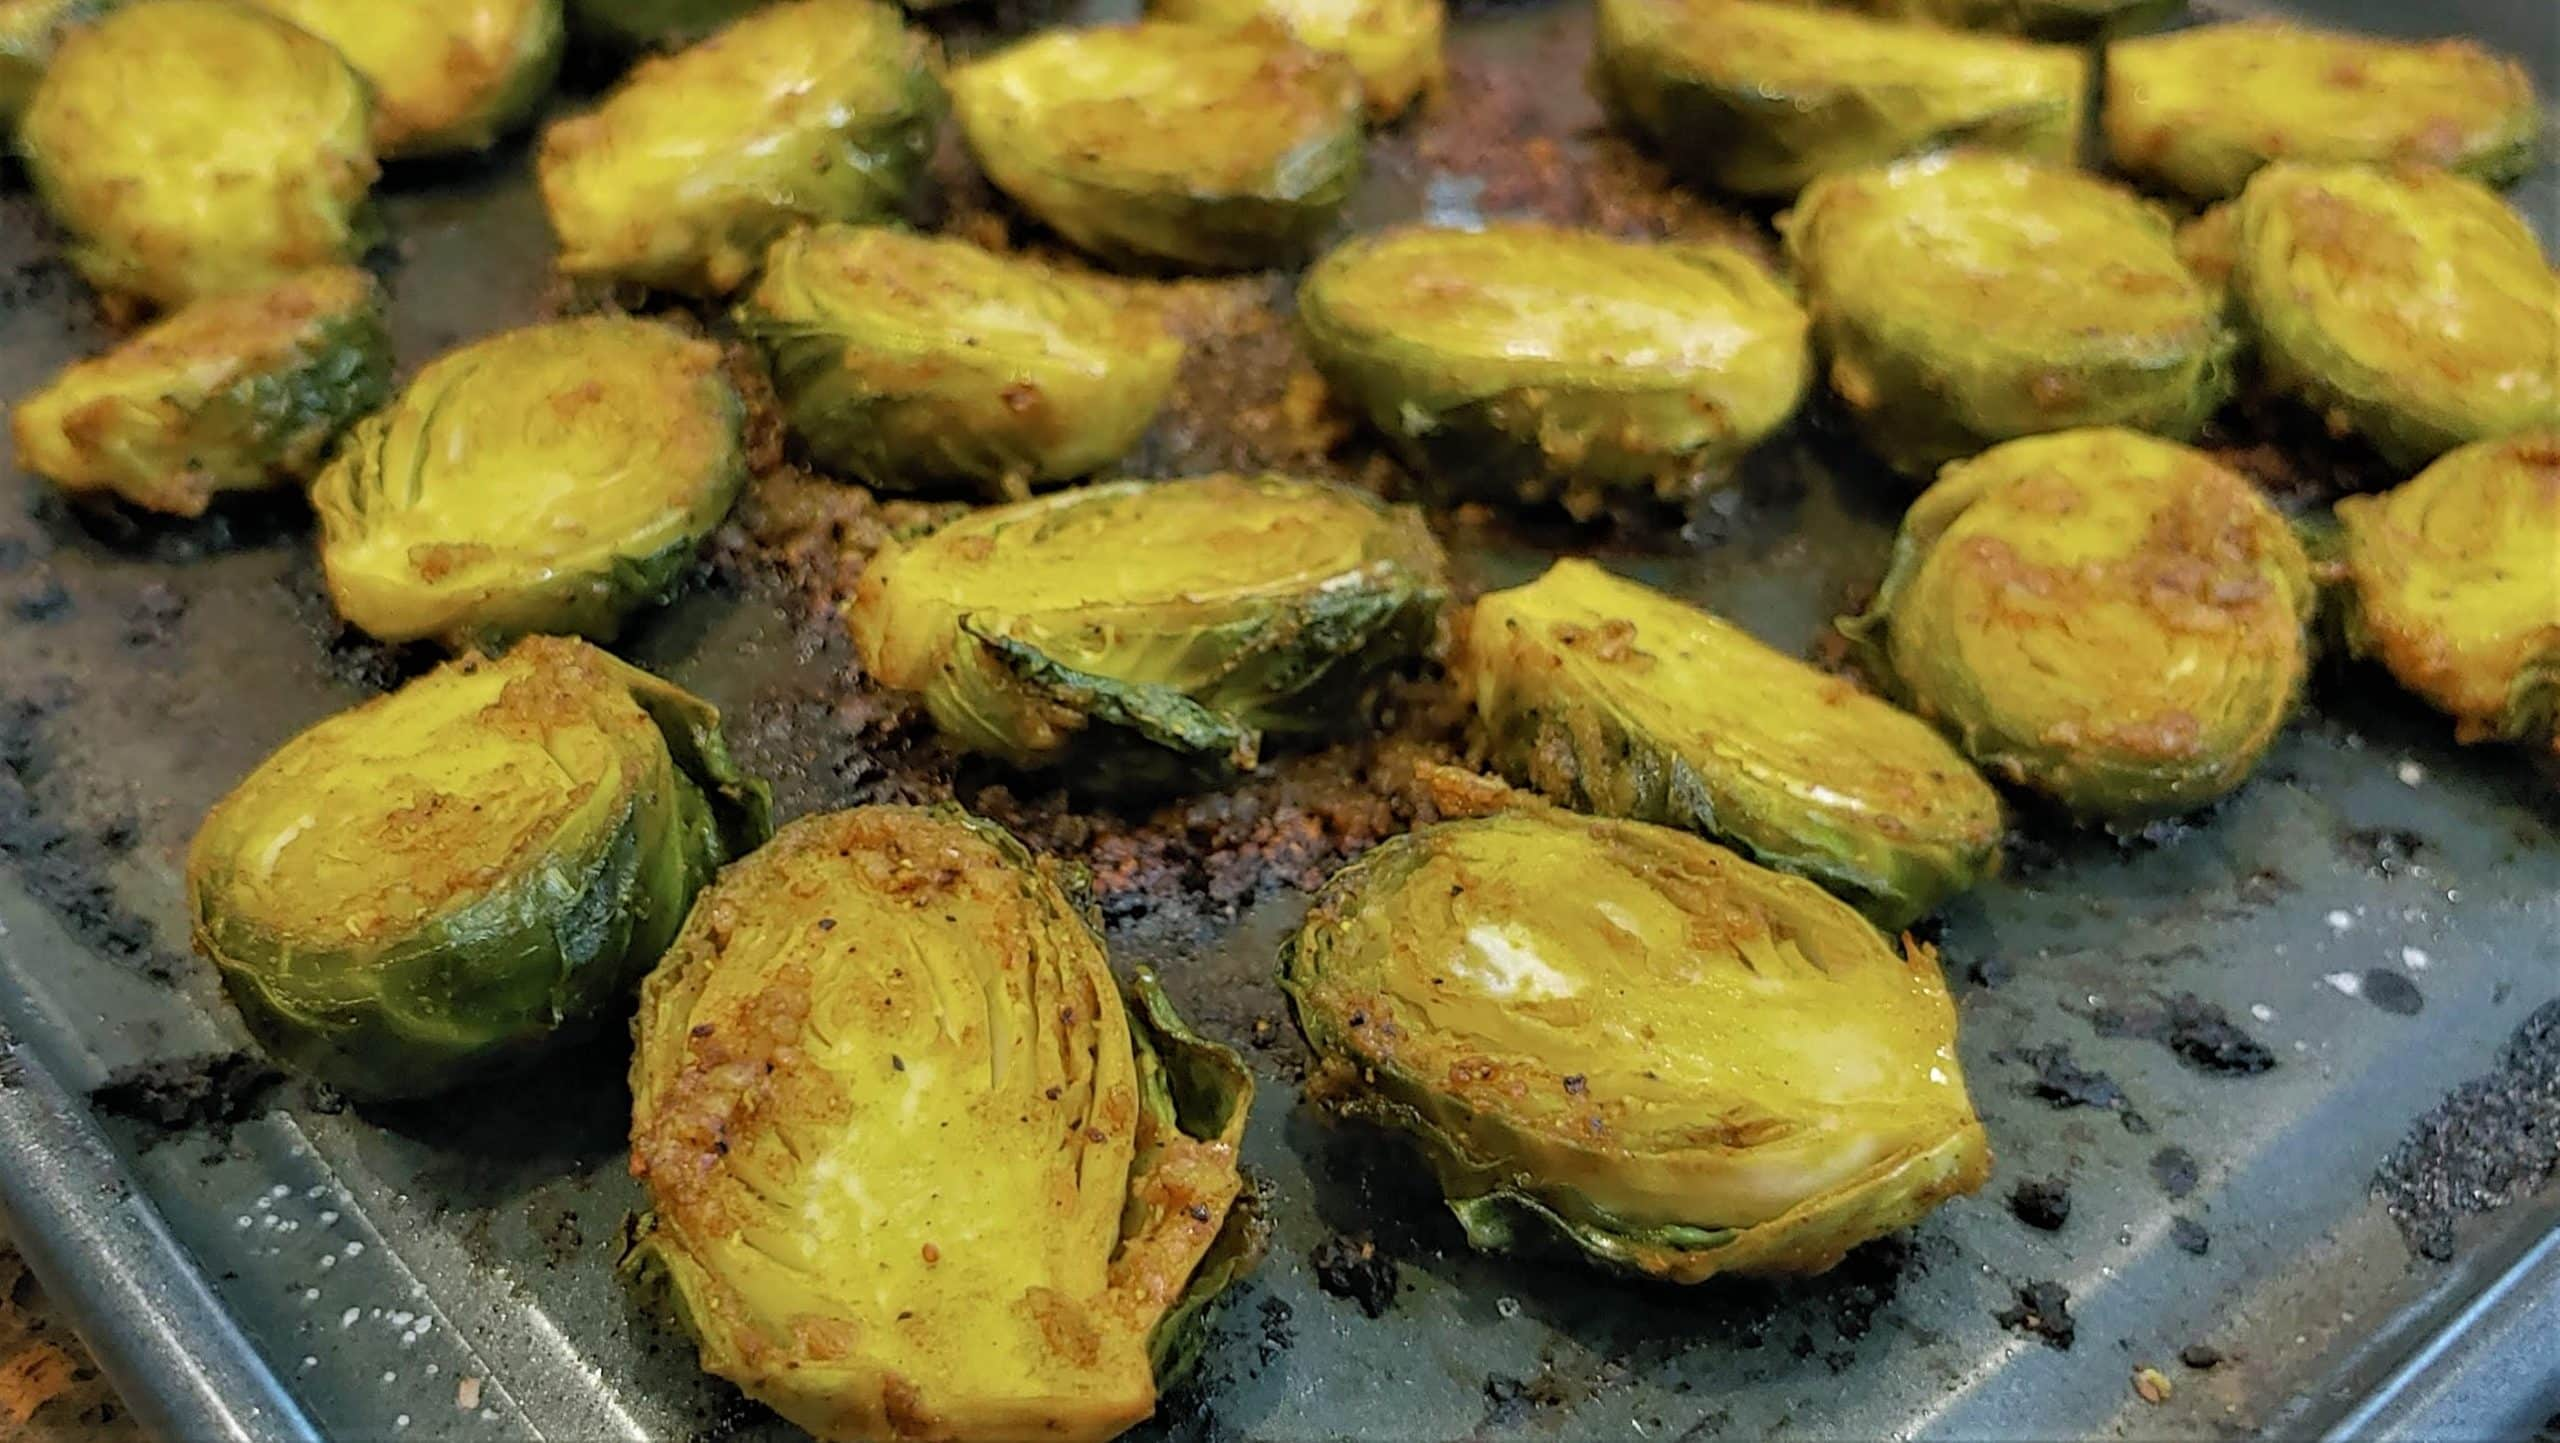 Roasted Brussels Sprouts - Dining in with Danielle